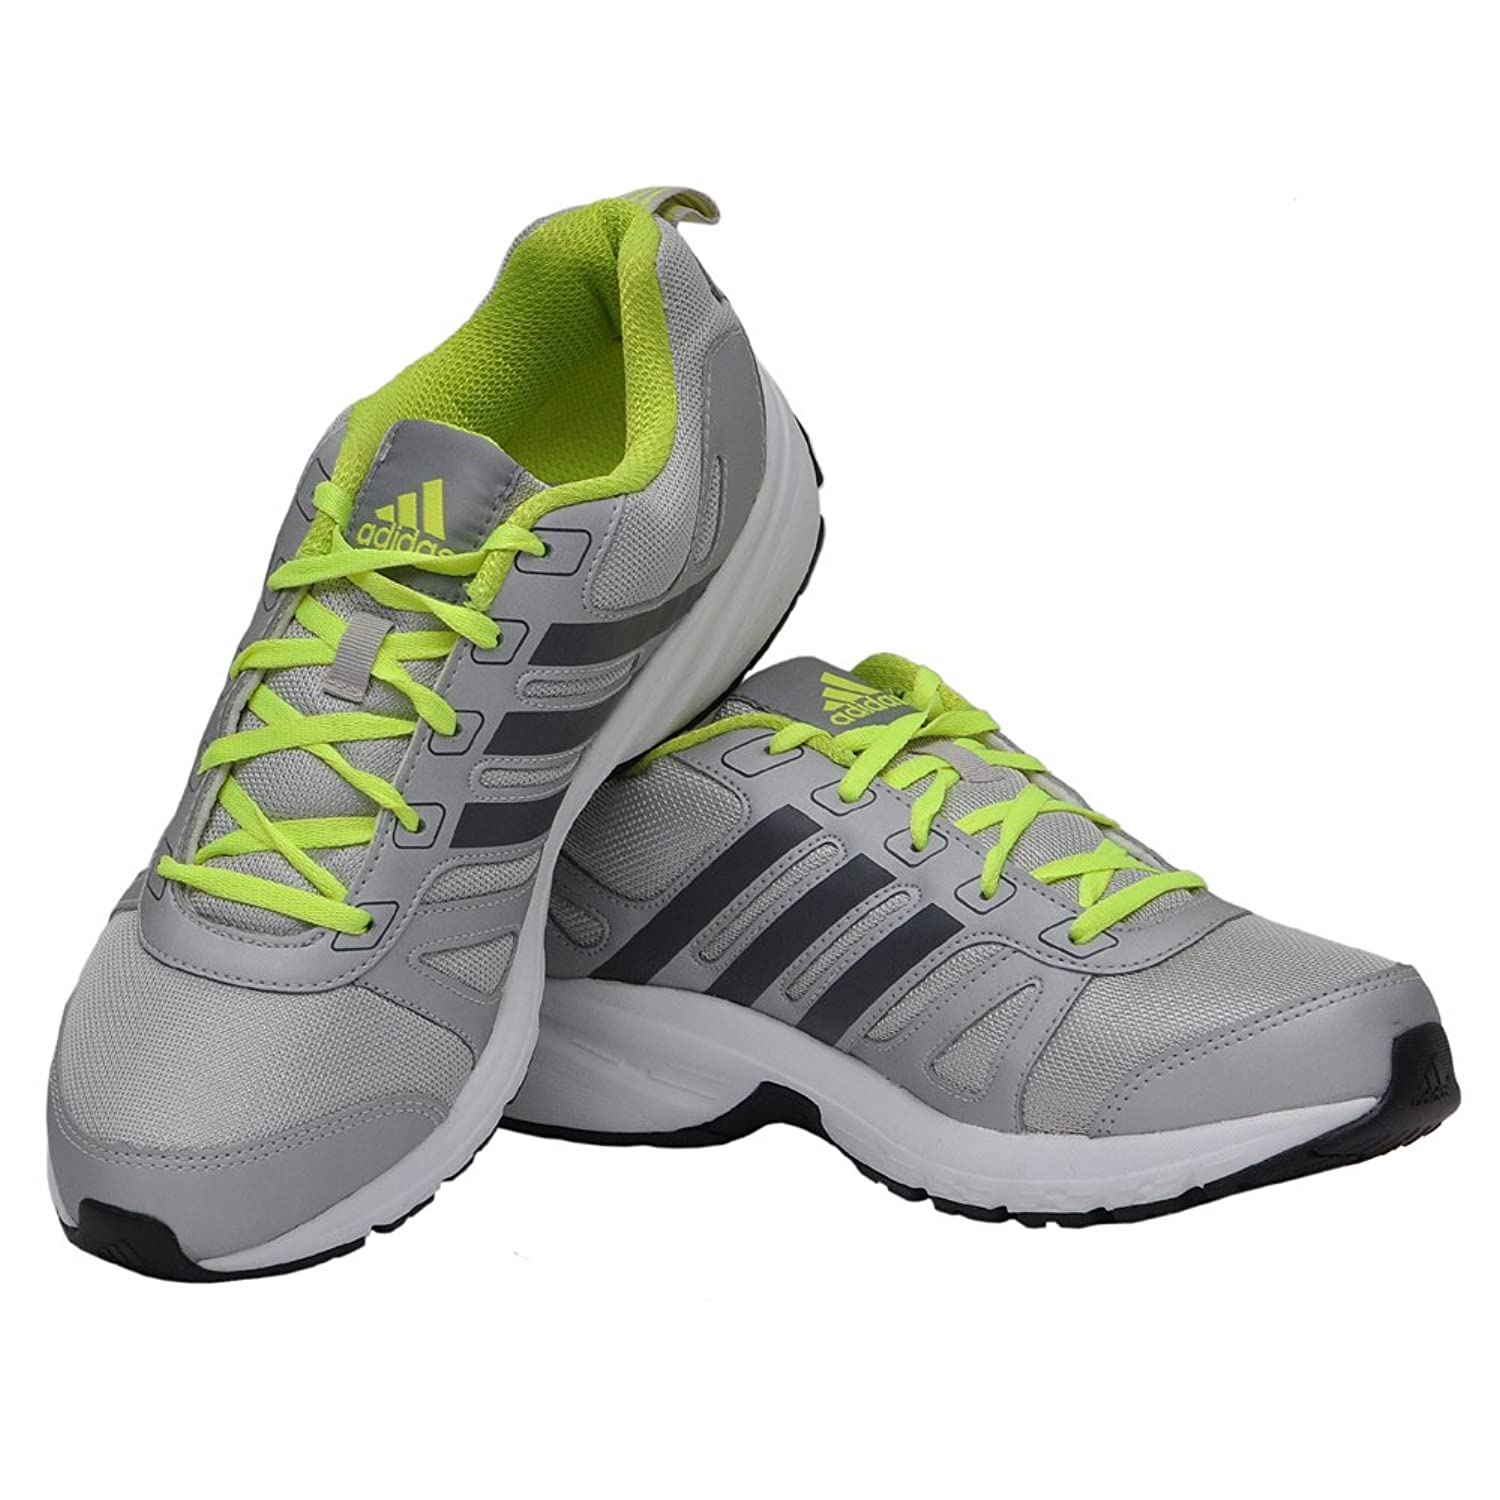 adidas Men's Adi Primo 1.0 M Mesh Running Shoes: Buy Online at Low Prices  in India - Amazon.in